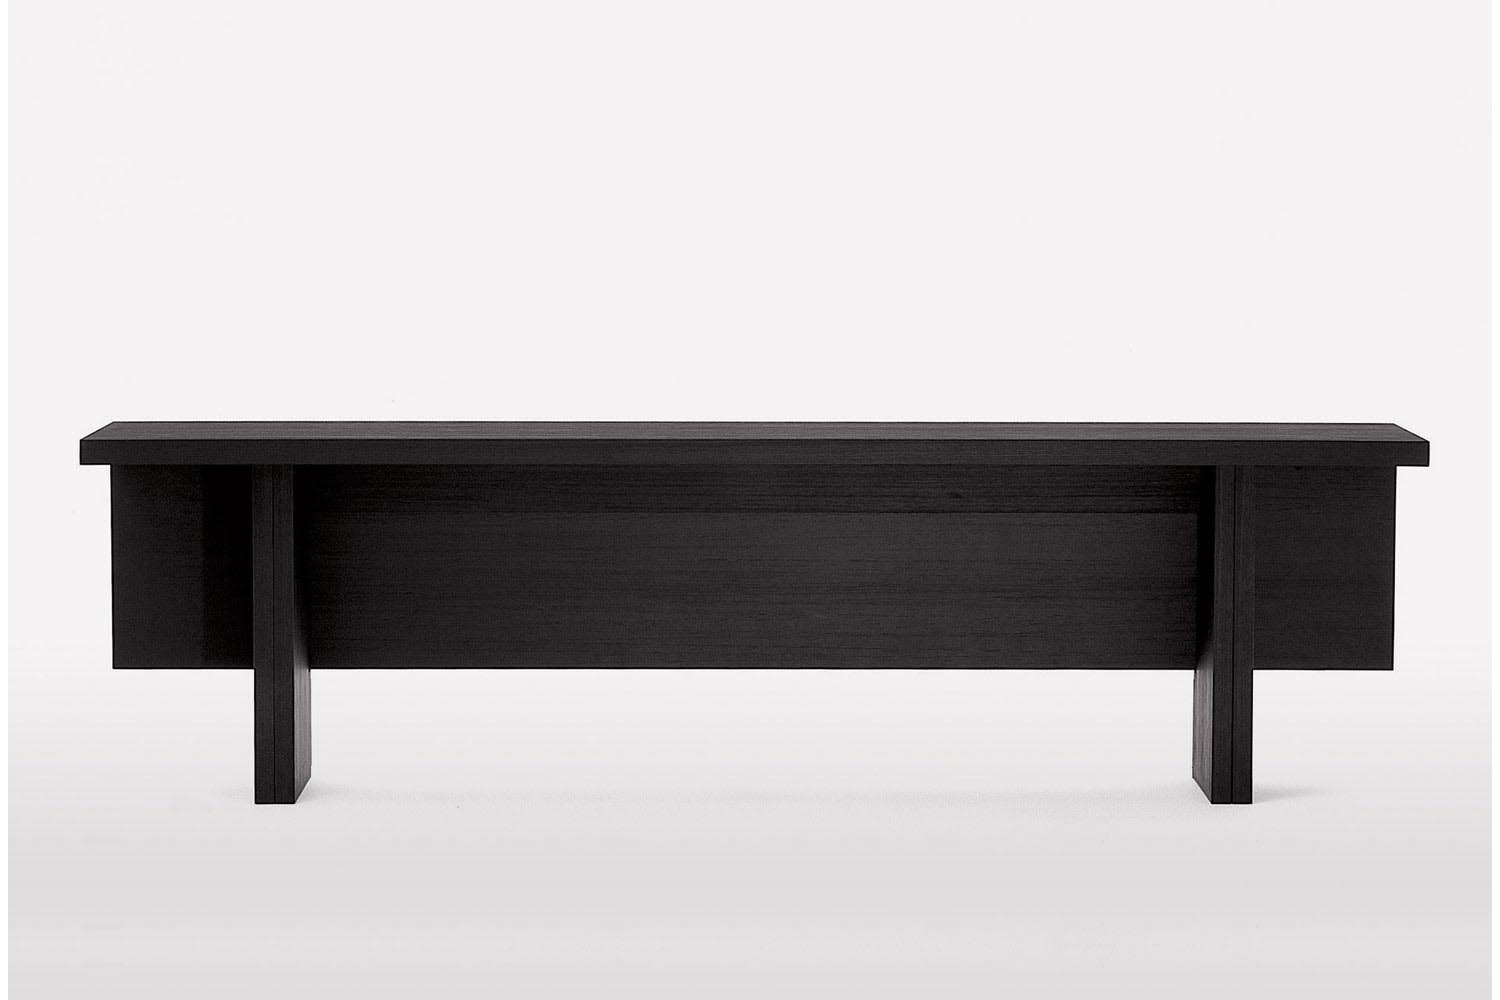 Sibilla Console Table by Antonio Citterio for Maxalto